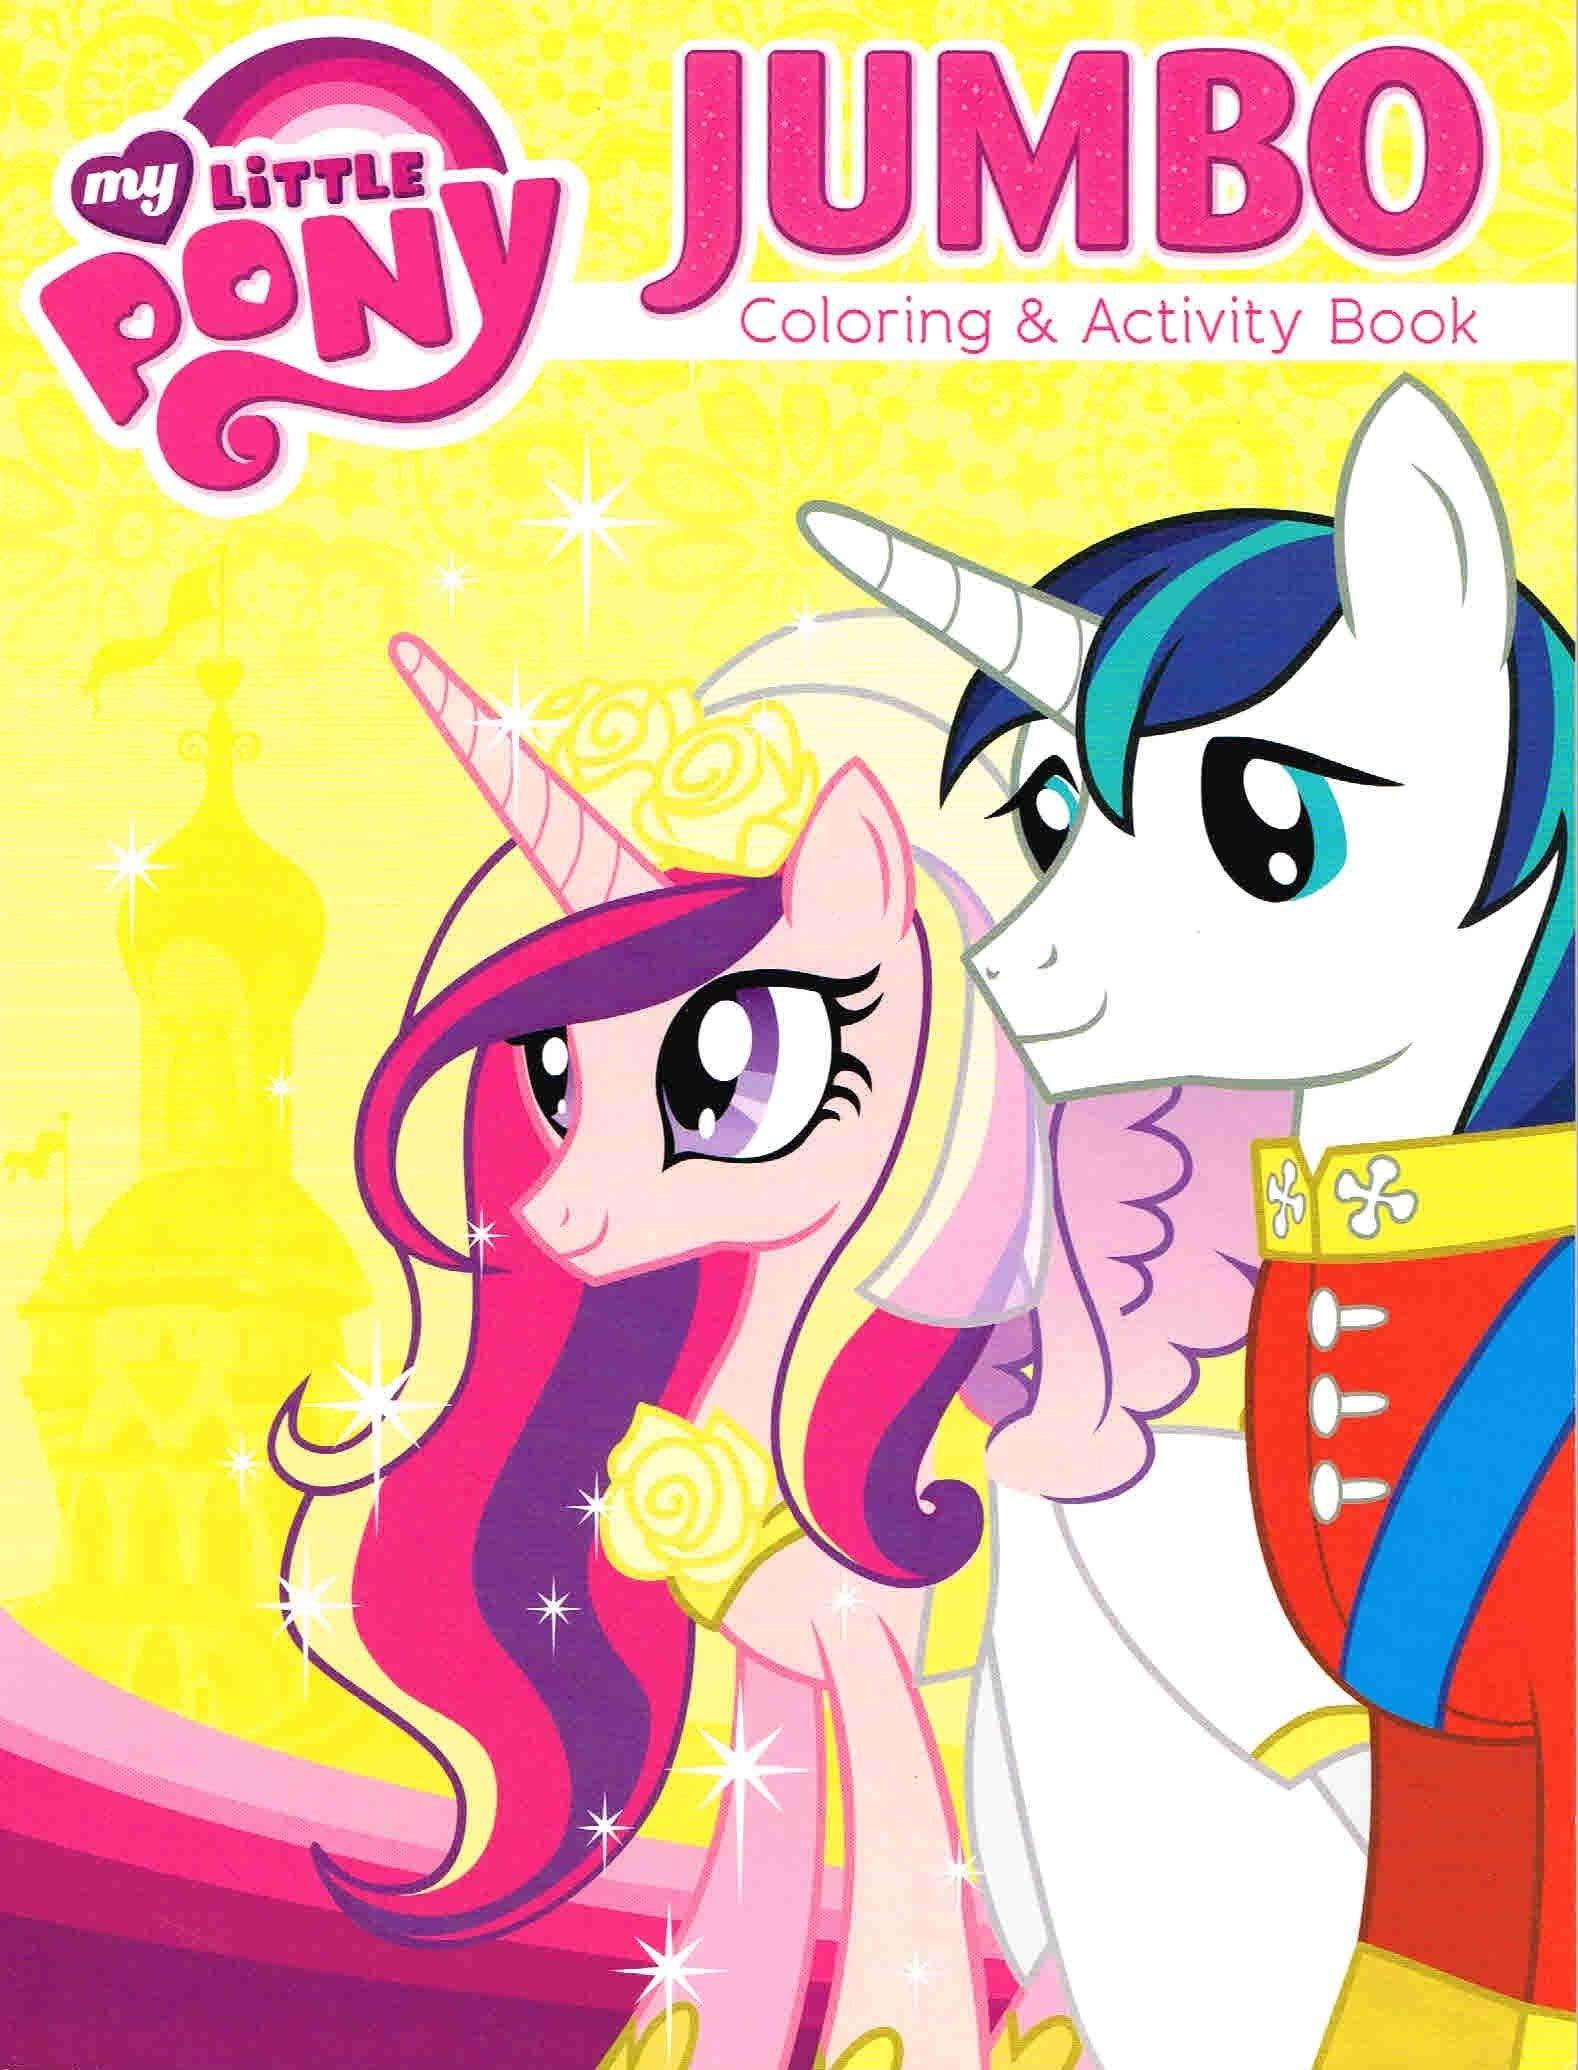 - My Little Pony Coloring And Activity Book - Featuring Princess